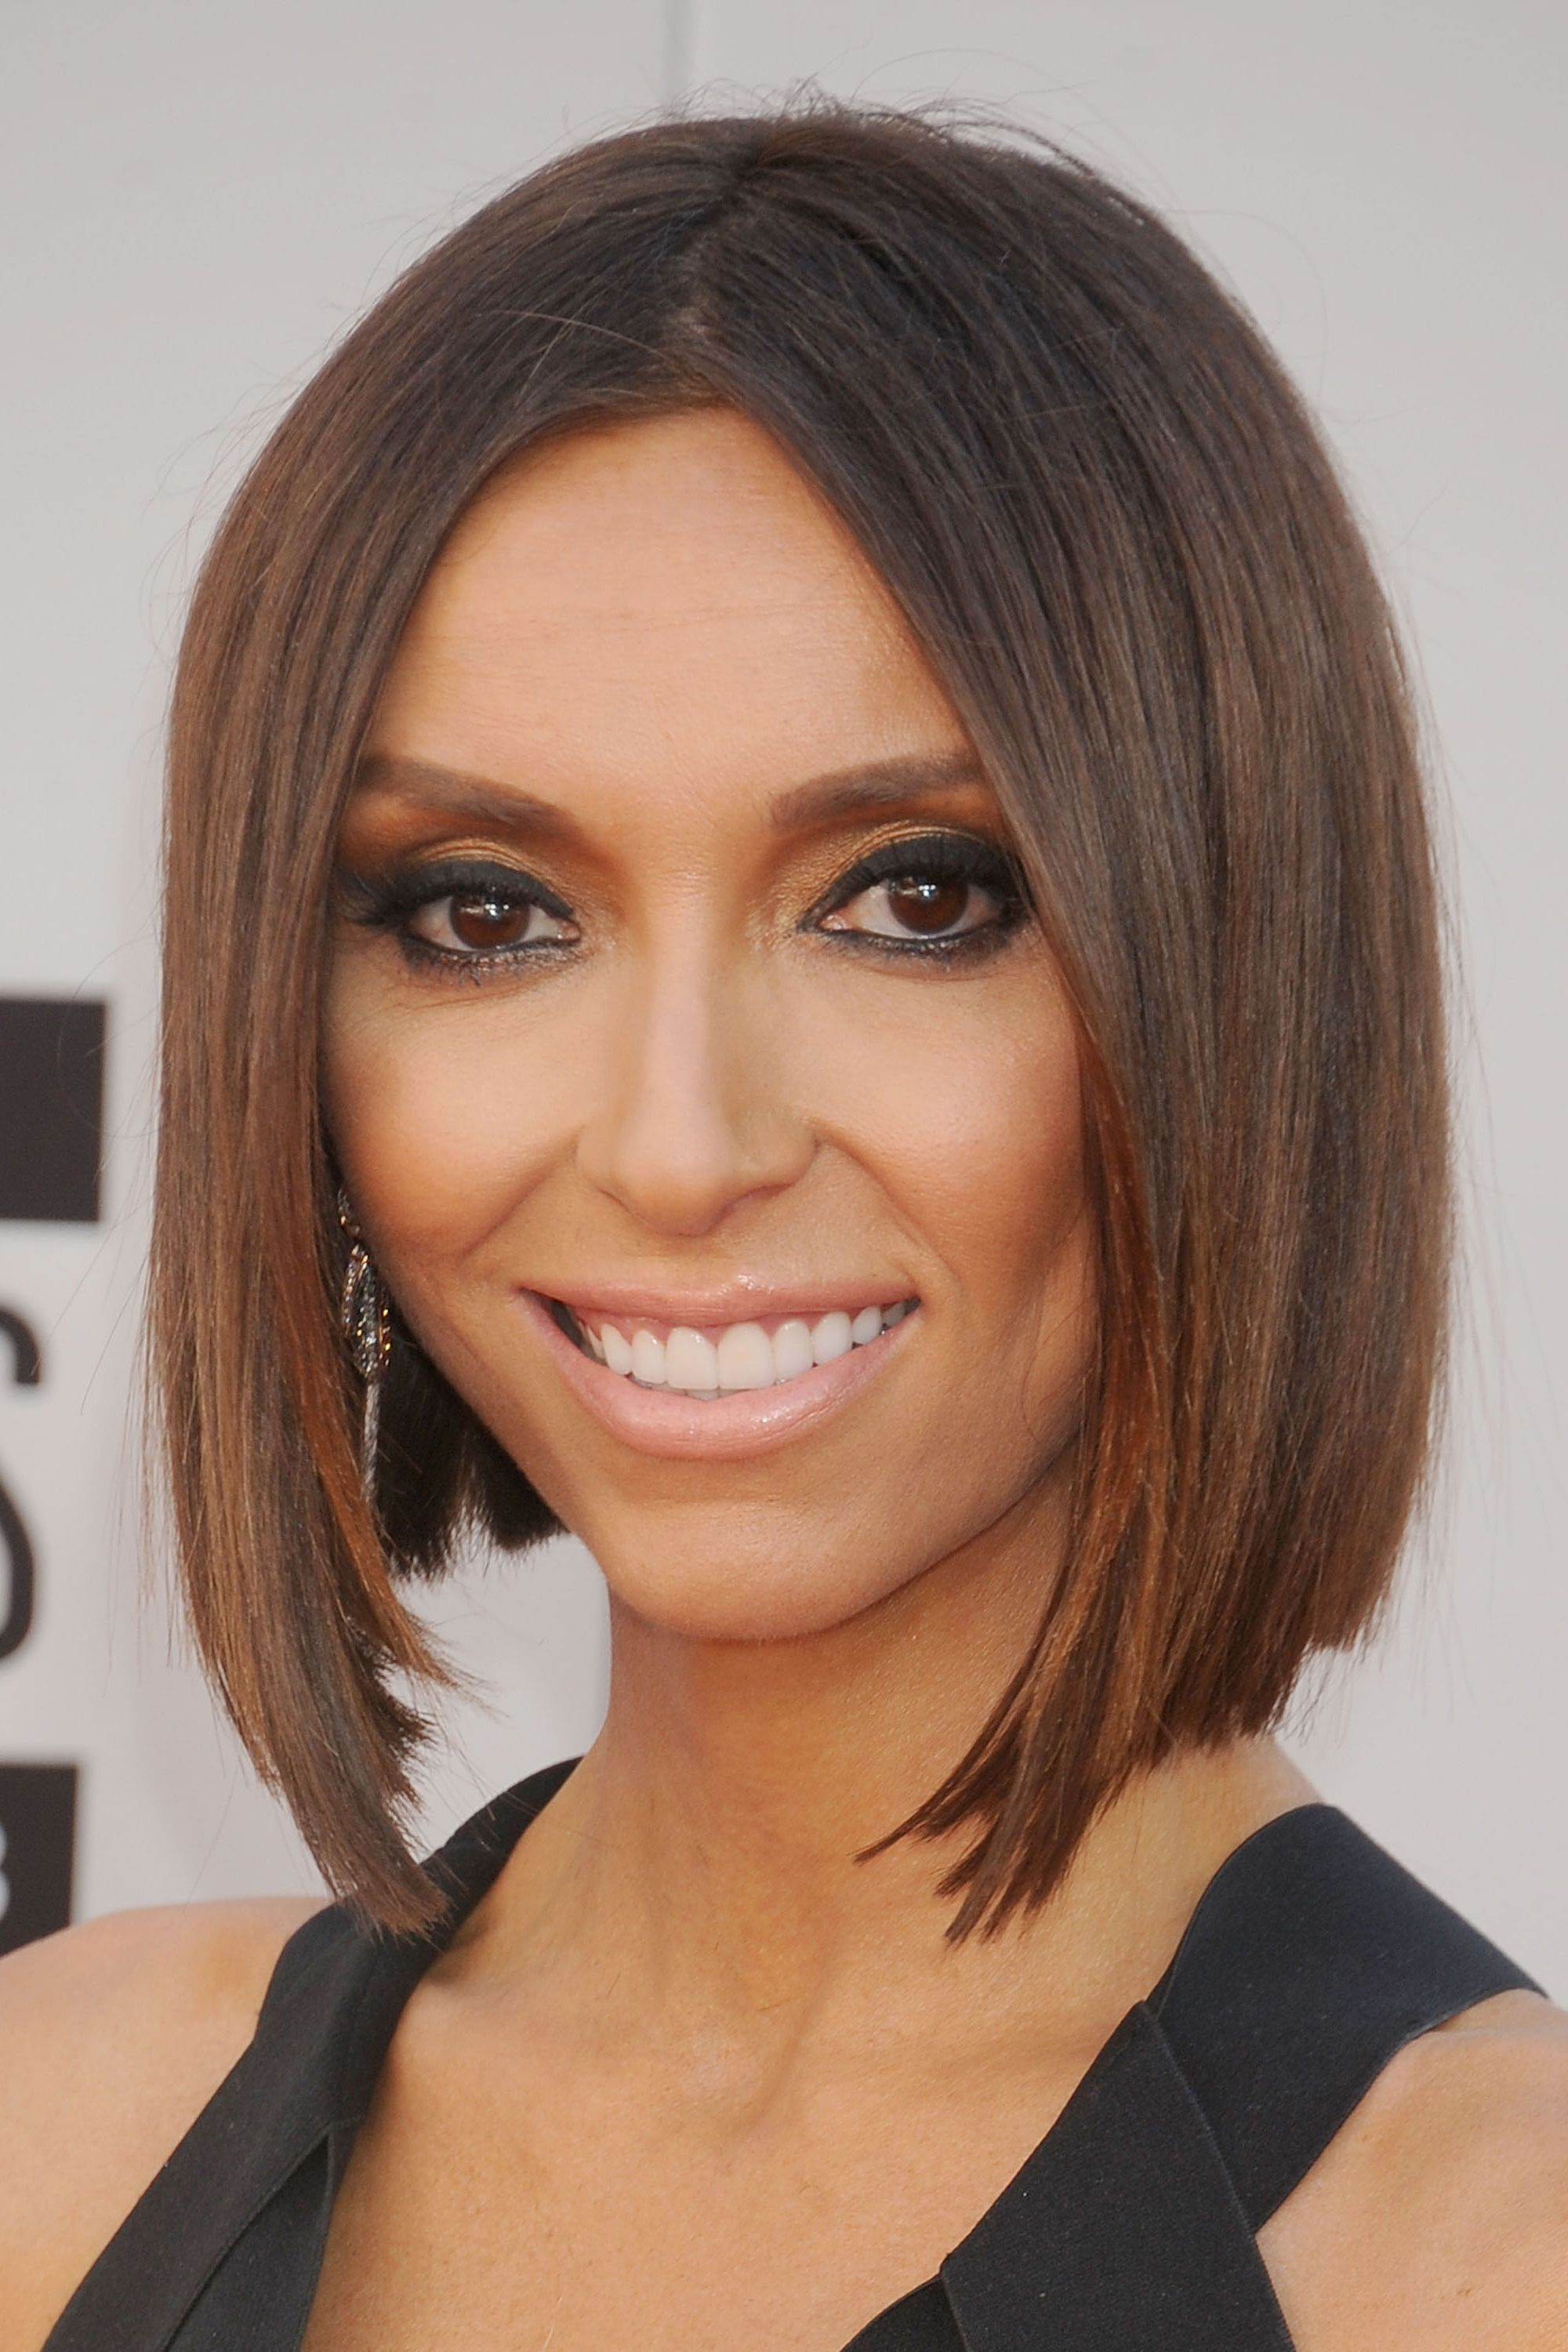 mediumlength hairstyles we canut stop staring at giuliana